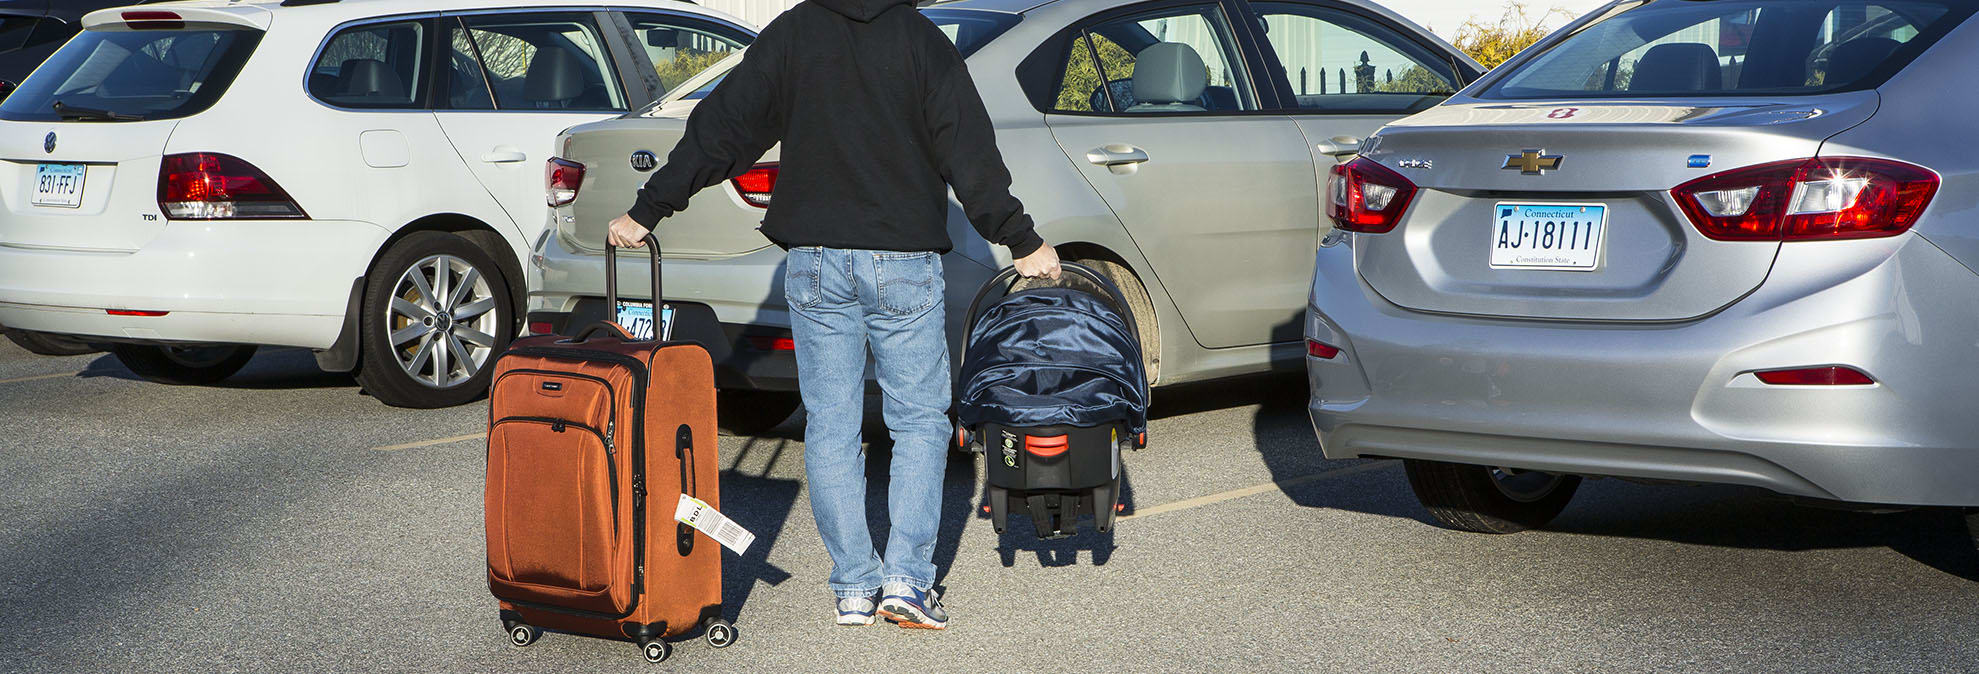 rent a car seat on vacation consumer reports - Rent A Car With Prepaid Card